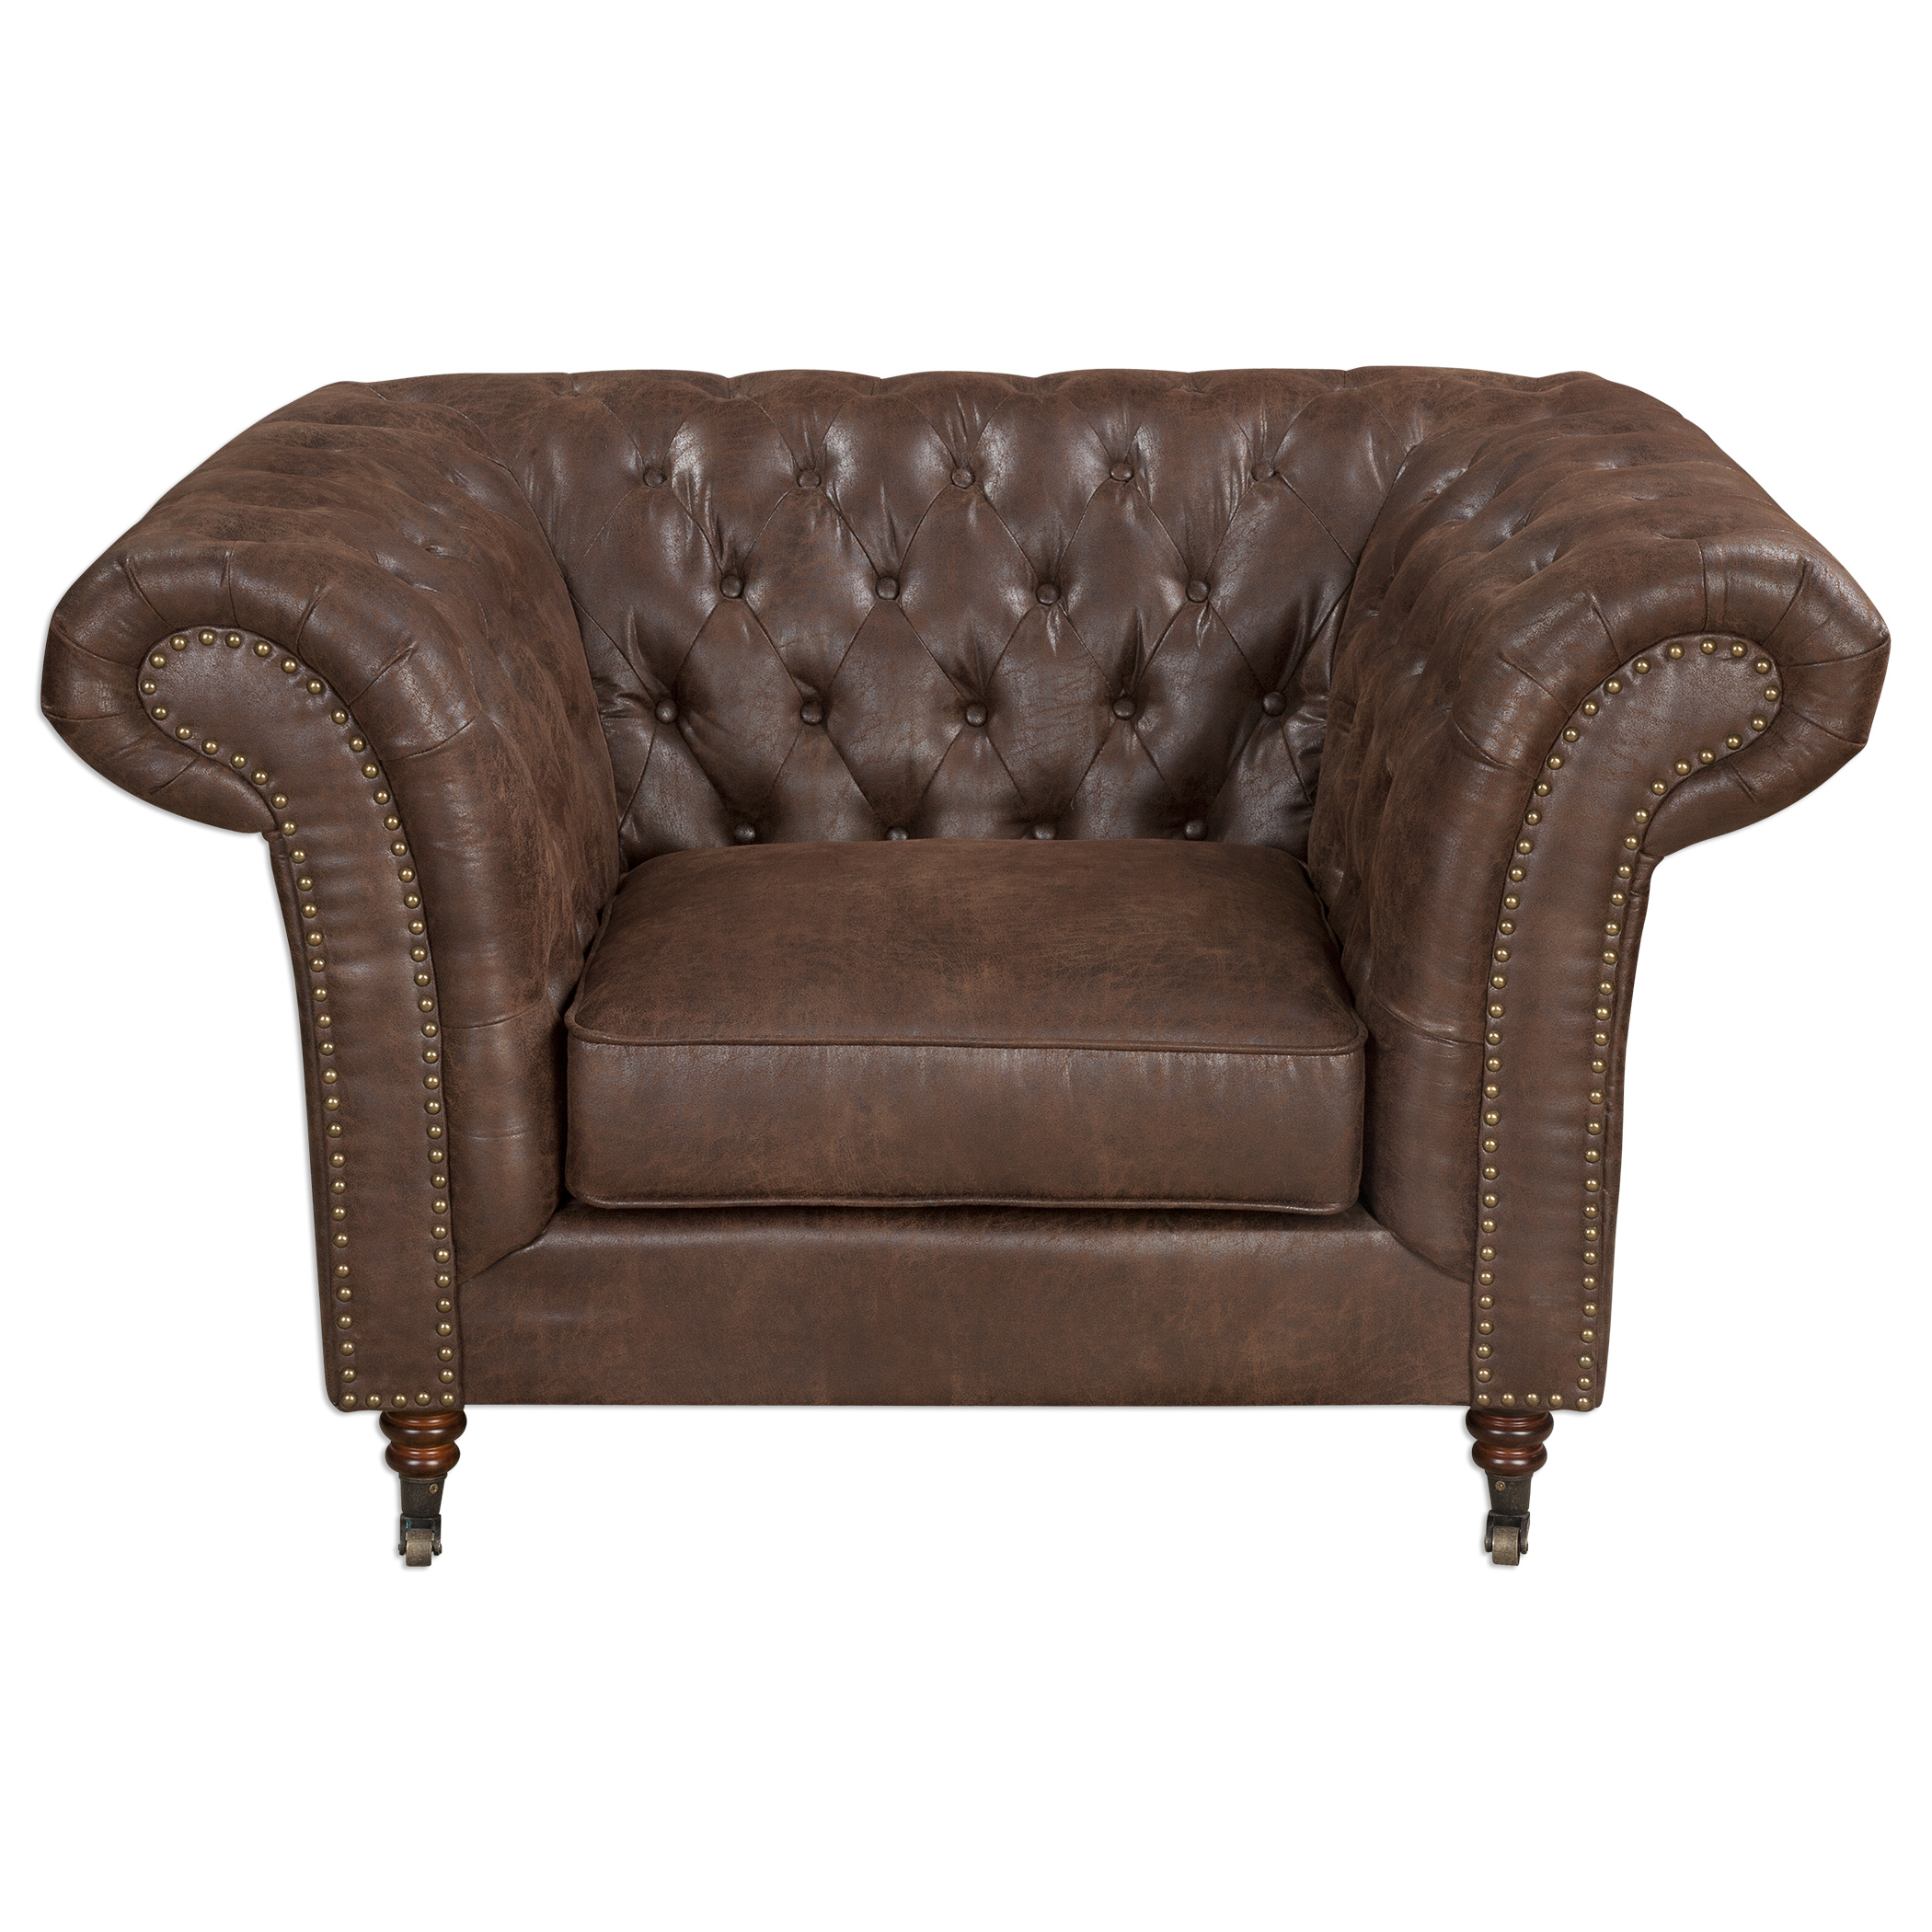 Uttermost Accent Furniture Redmond Weathered Brown Armchair - Item Number: 23297